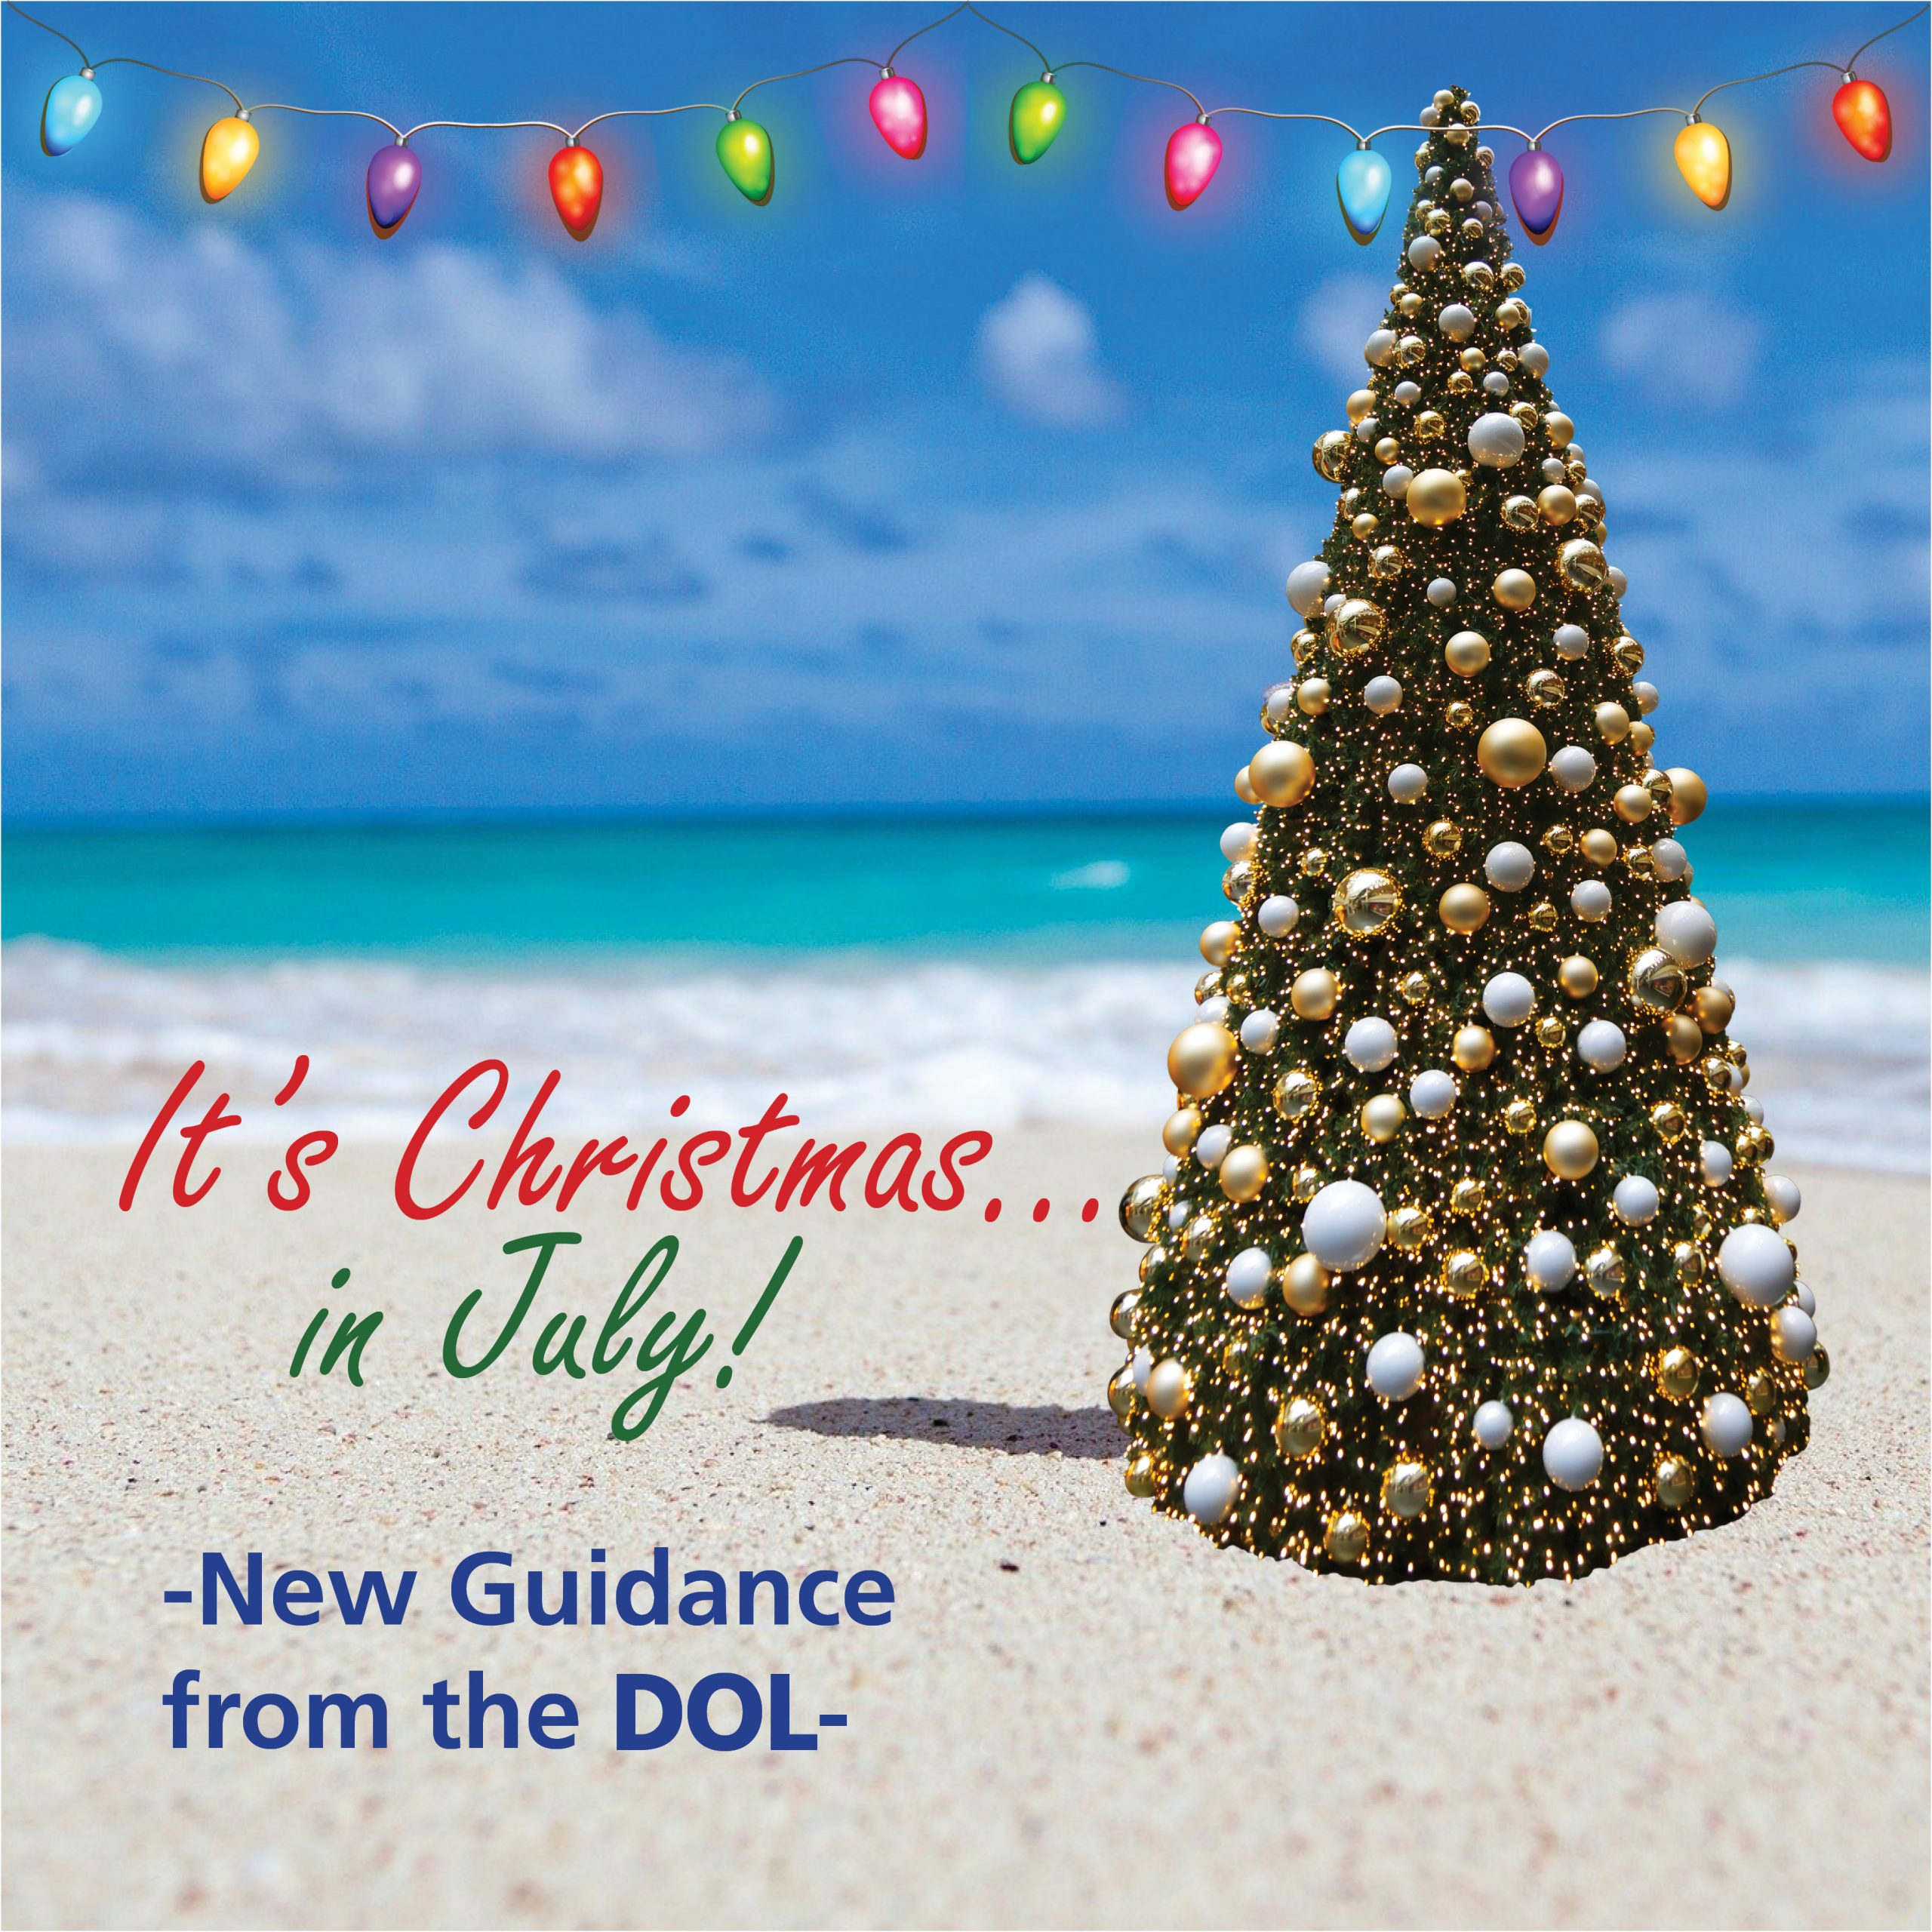 s Christmas In July 2020 It's Christmas In July! New Guidance from the DOL   Graydon Law